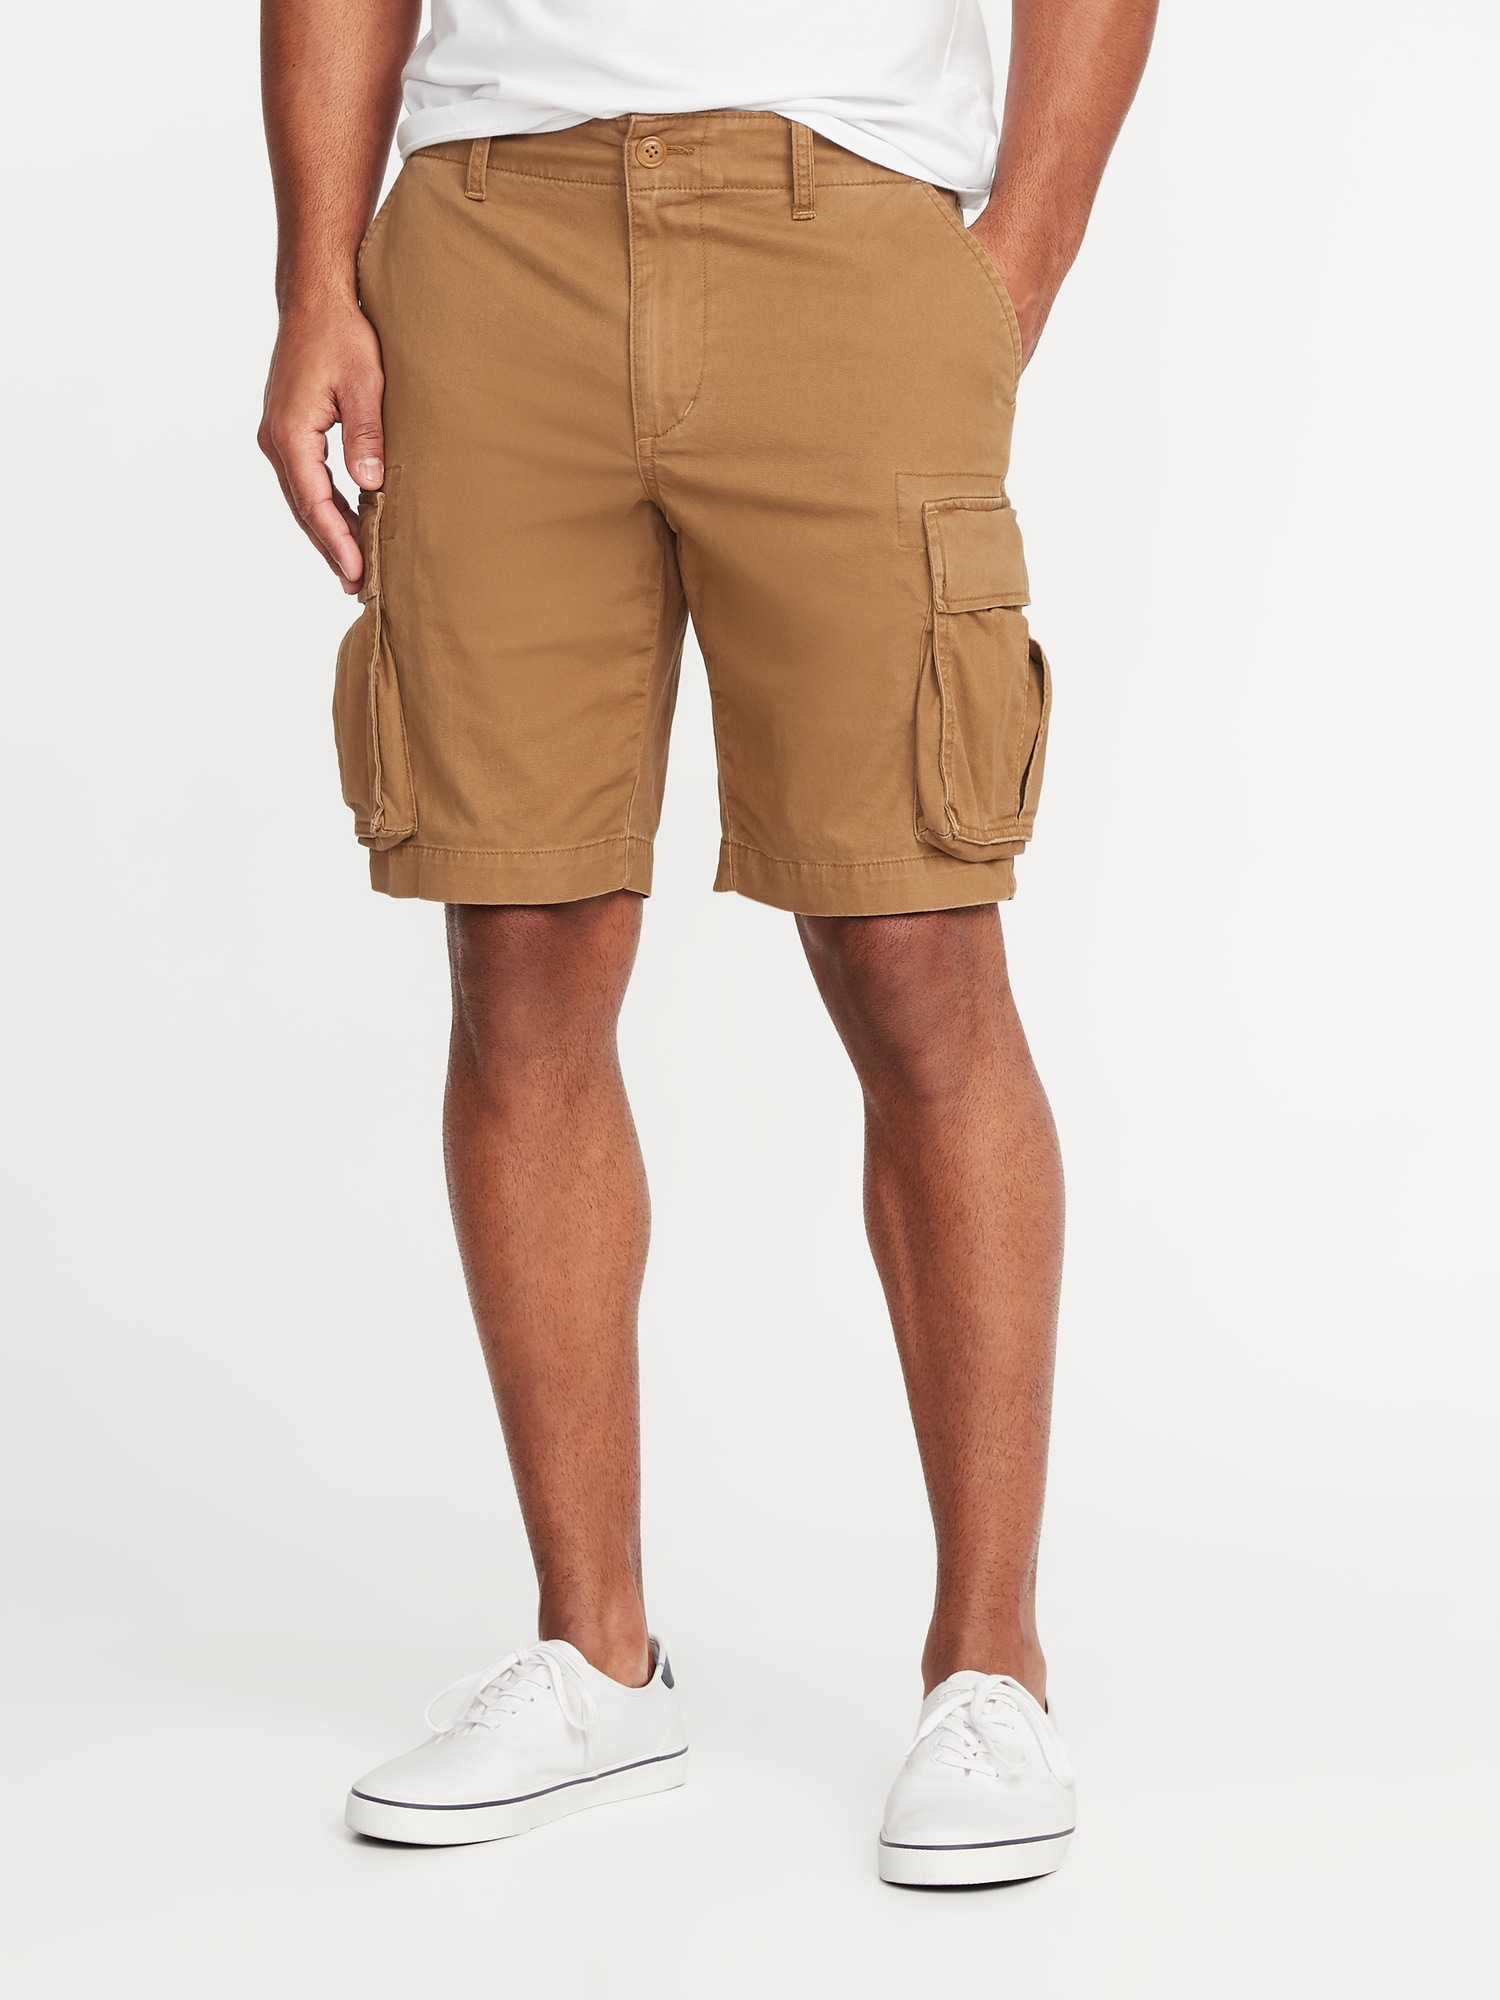 d04ea50aa7 Lived-In Built-In Flex Cargo Shorts for Men - 10-inch inseam | Old Navy